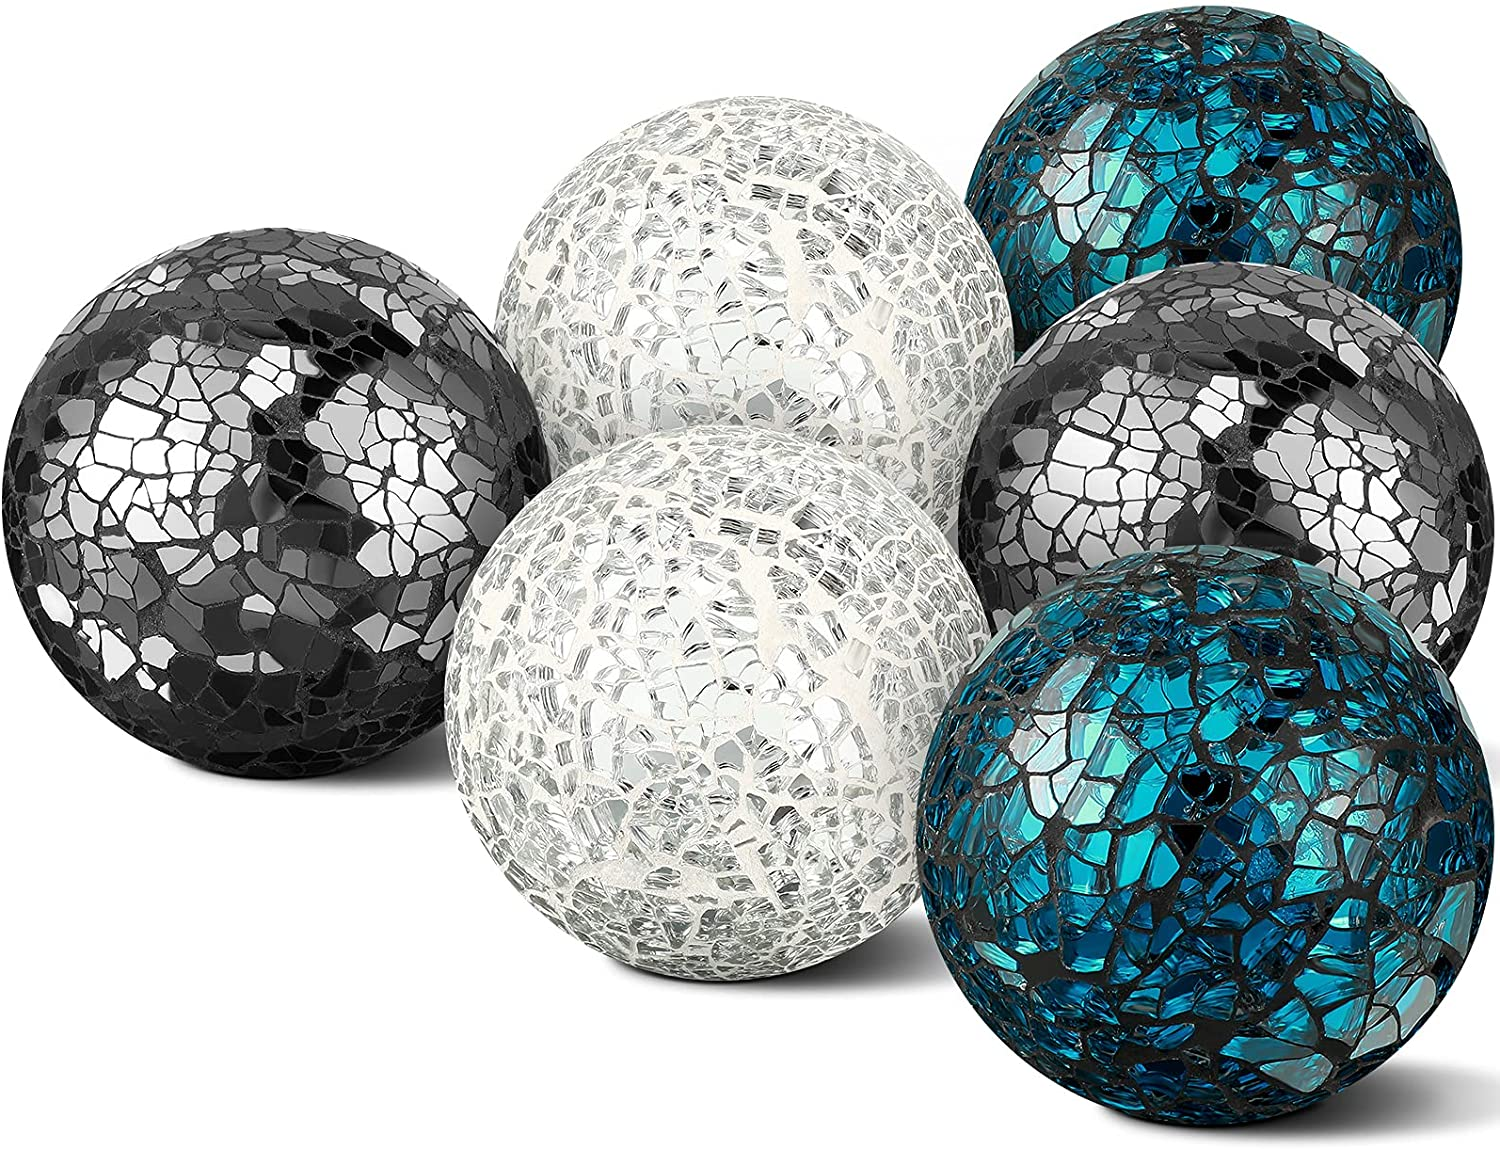 6 Pieces Mosaic Glass Orbs Mosaic Sphere Glass Globe Decorative Orbs Centerpiece Balls Decorative Glass Balls for Bowls Vases Dining Table Centerpiece Decor, Sliver, Turquoise, Black